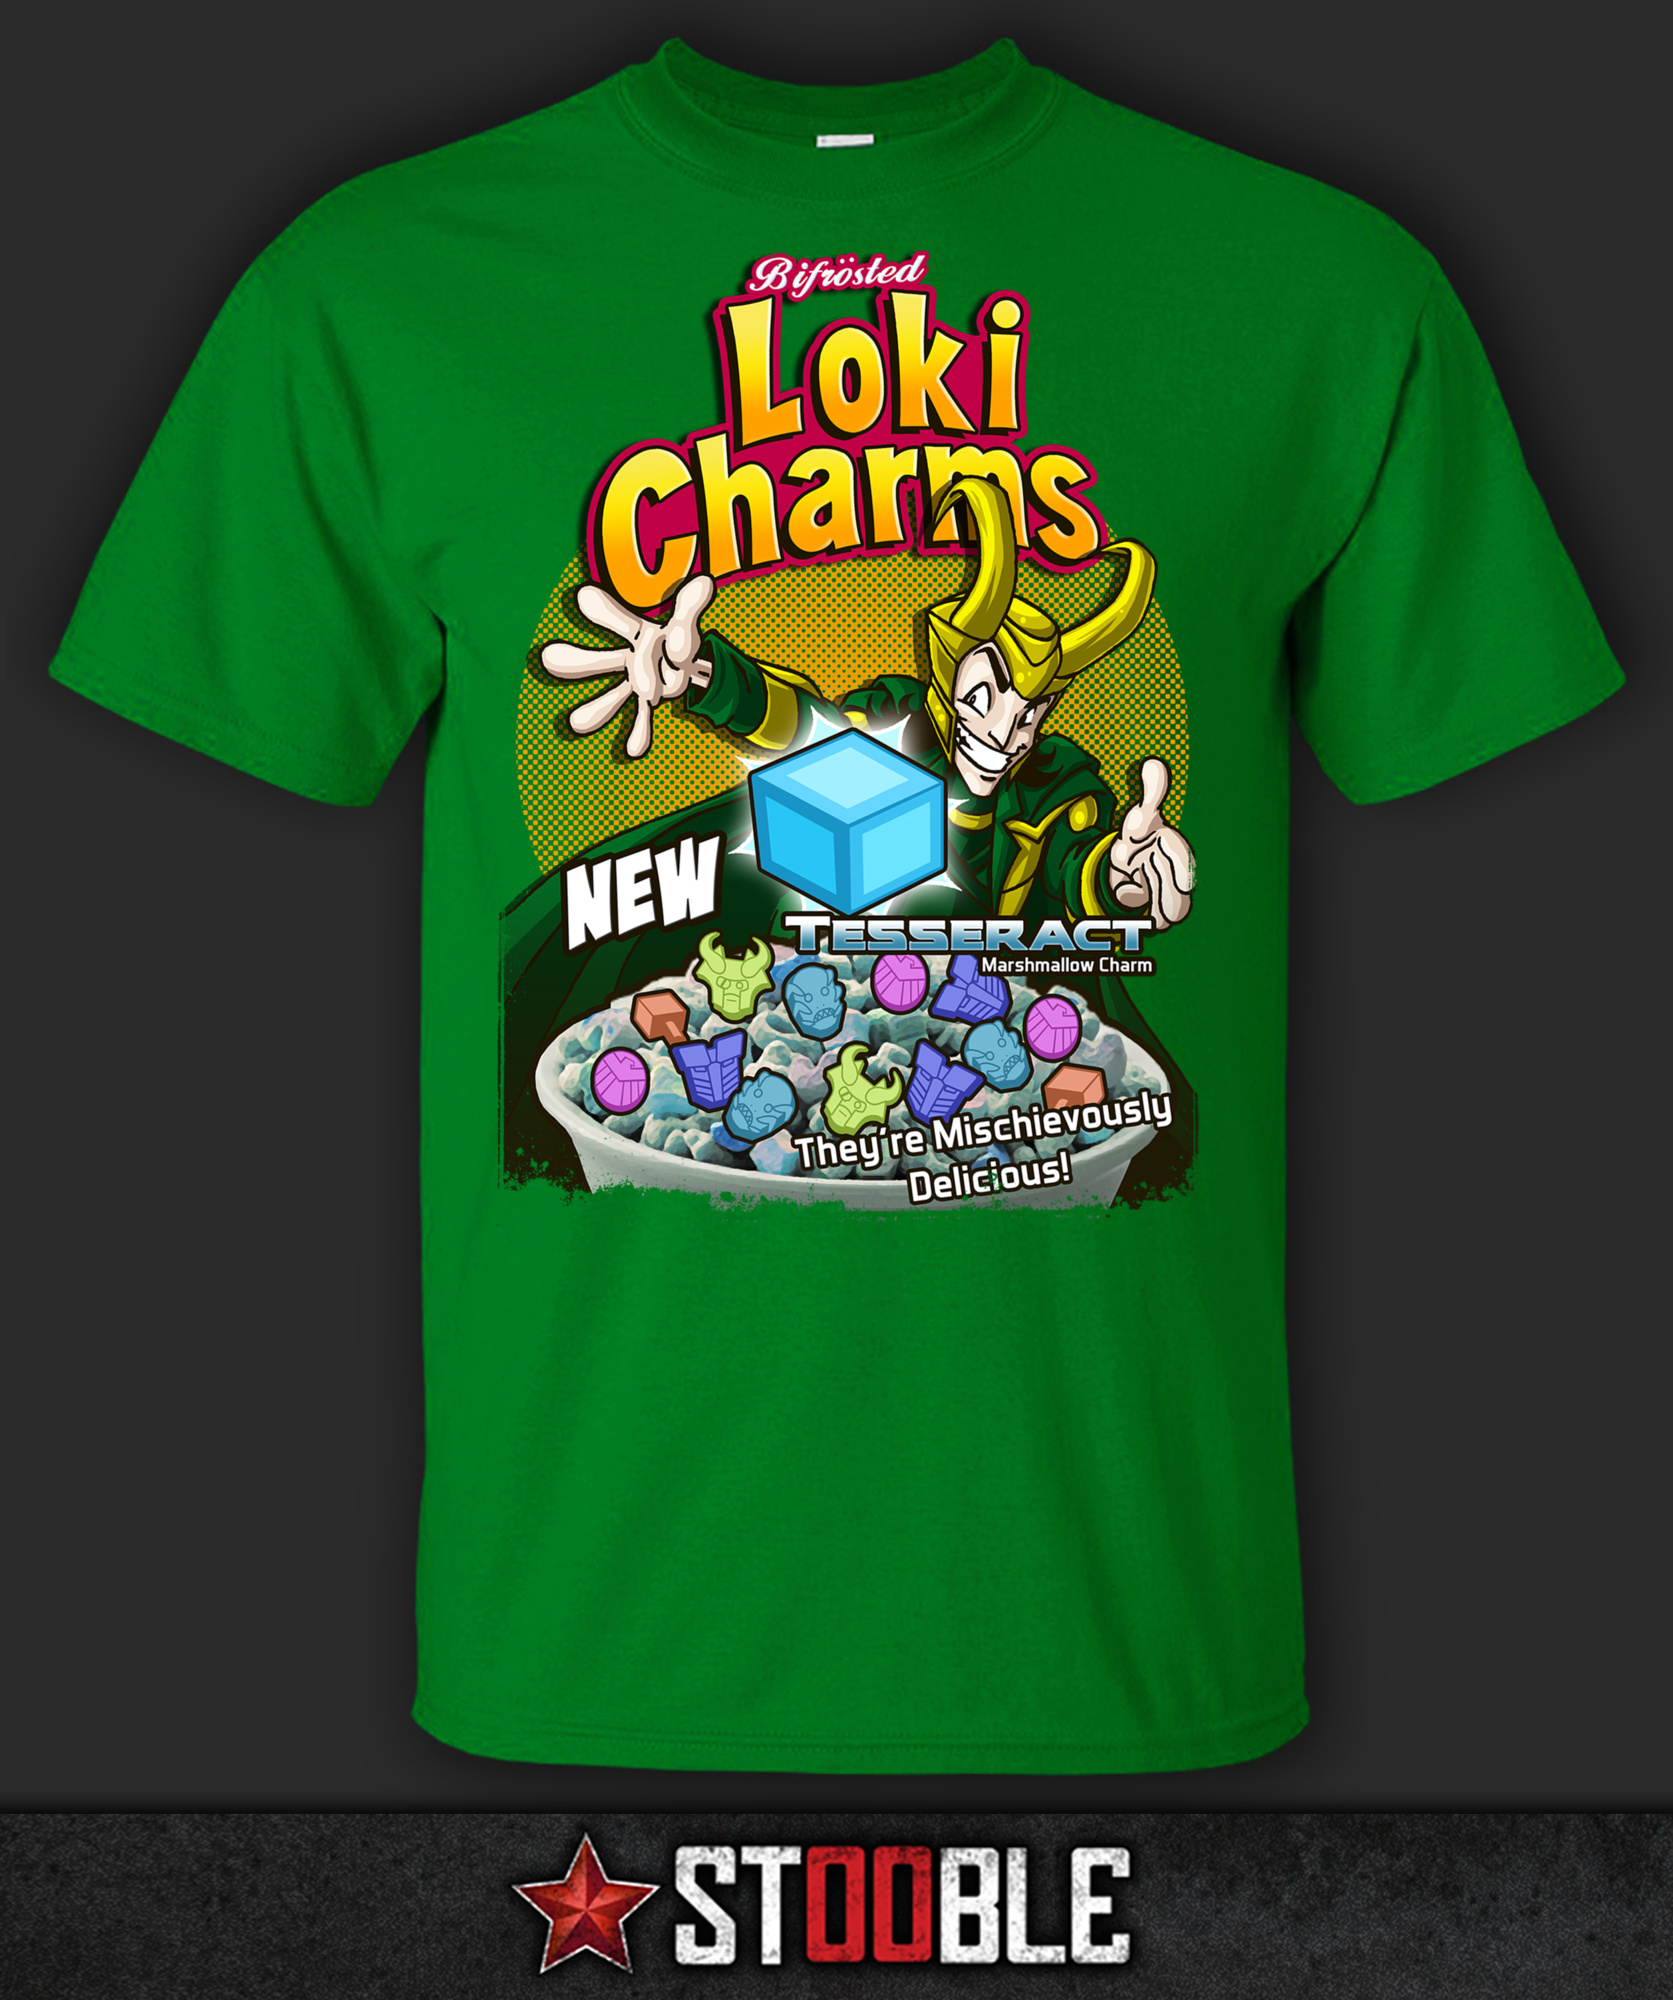 Loki Charms T-Shirt - New - Direct from Manufacturer